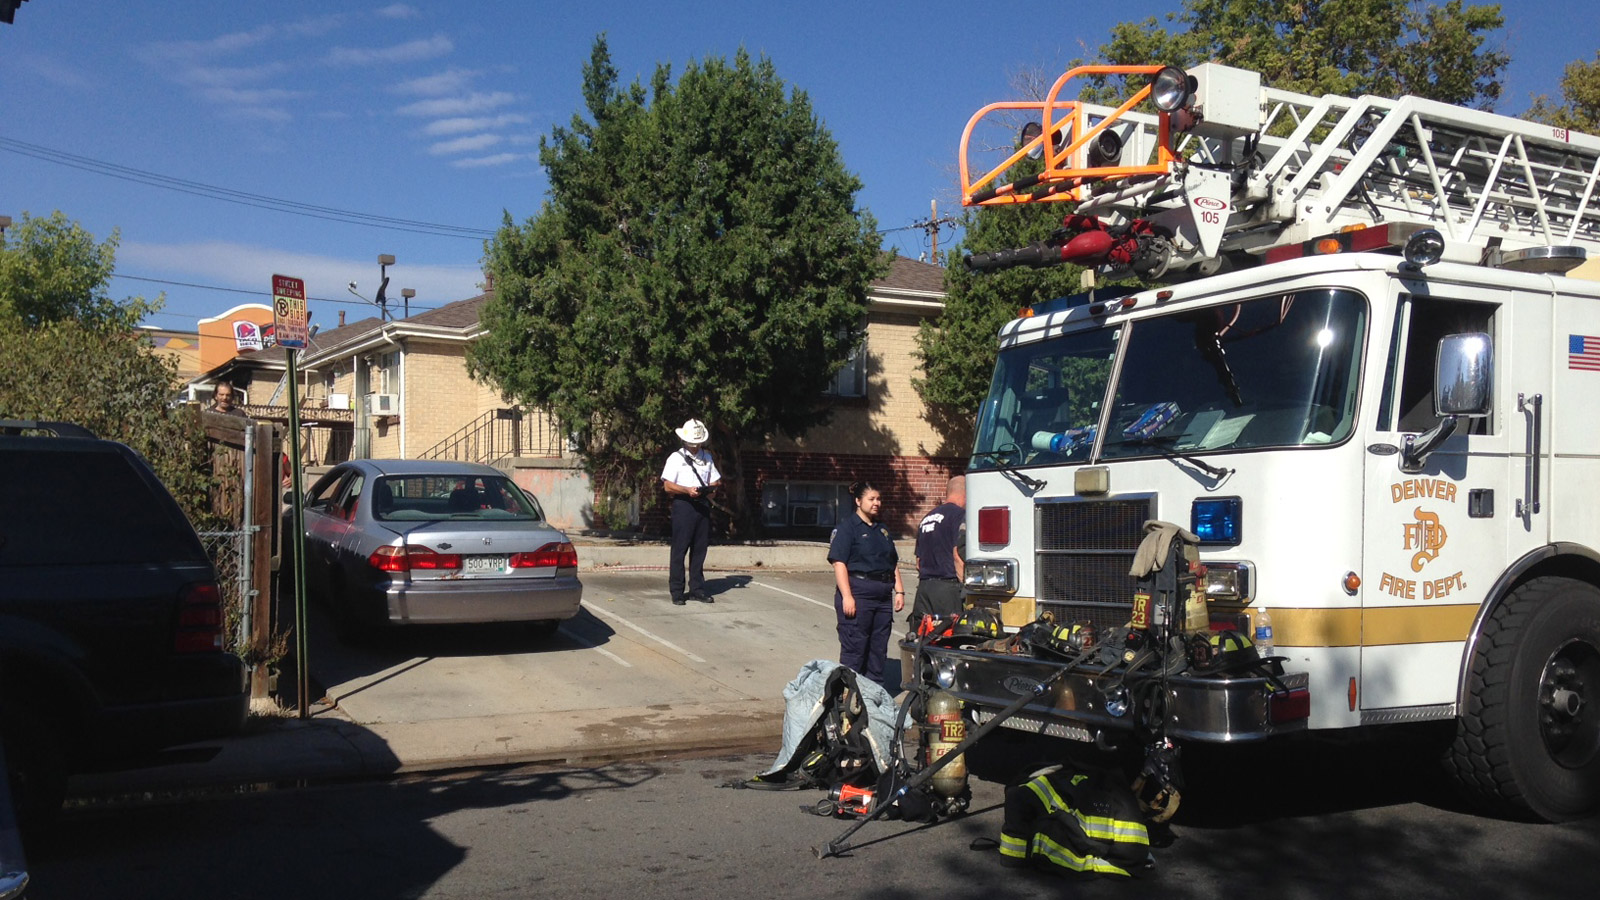 Firefighters rushed to a burning home in the 350 block of S. Eliot on Tuesday morning (credit: CBS)